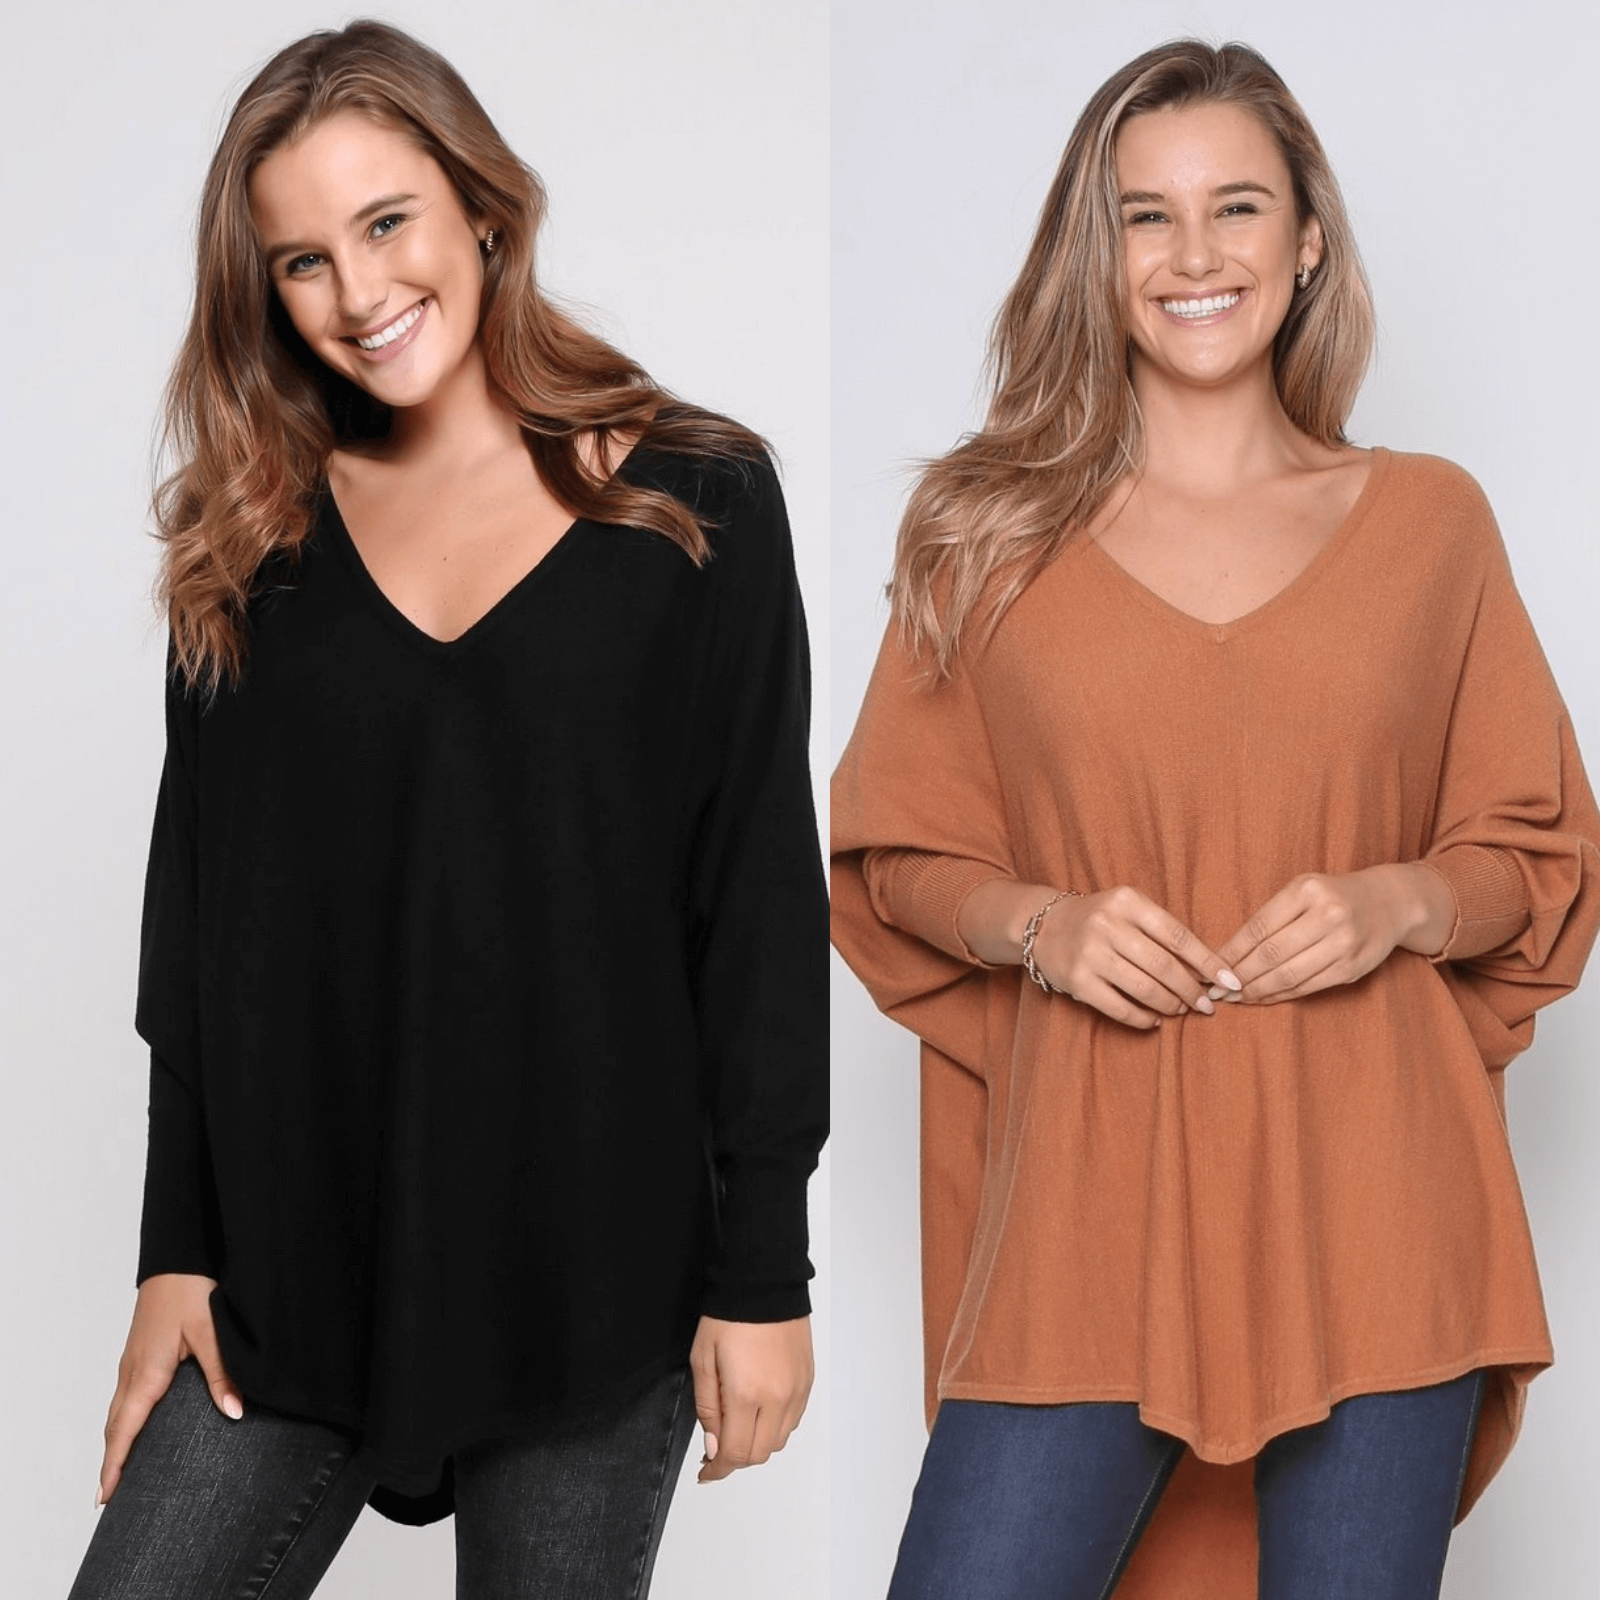 Two Zali Knit Top Bundle - Black and Caramel PRE-ORDER